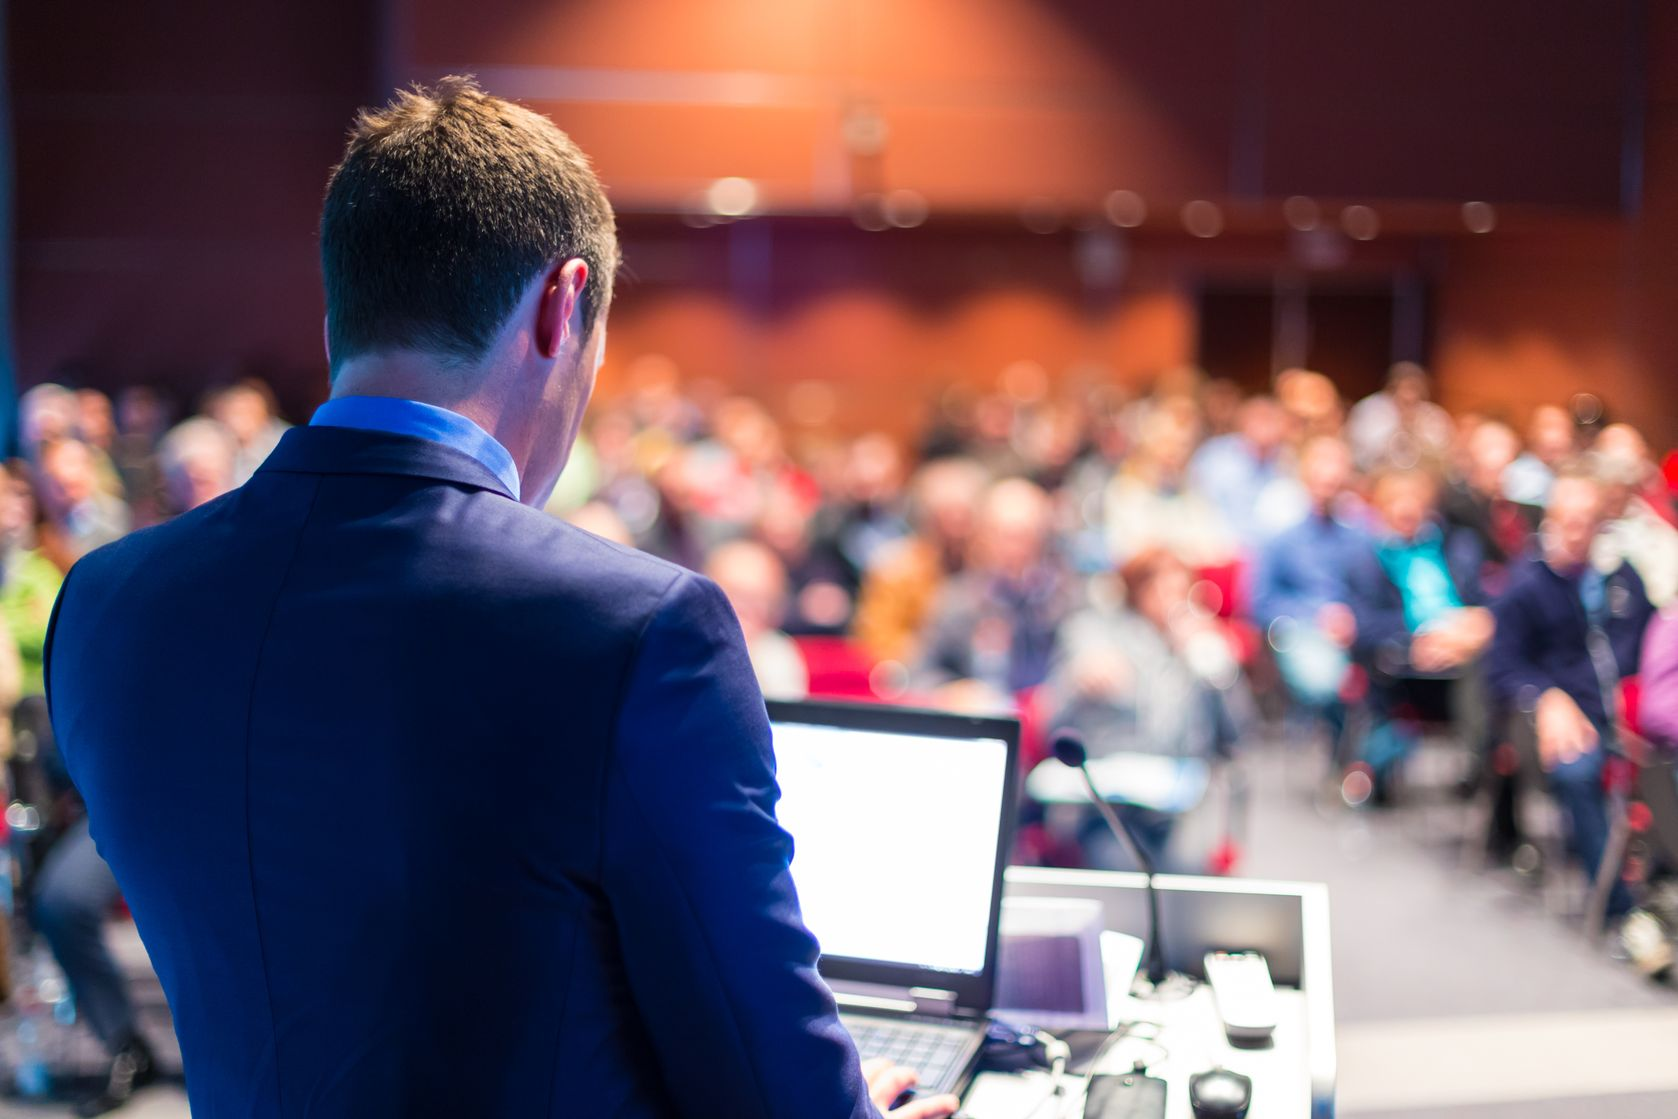 As a Business Analyst, taking the podium to speak is a big step in their career.